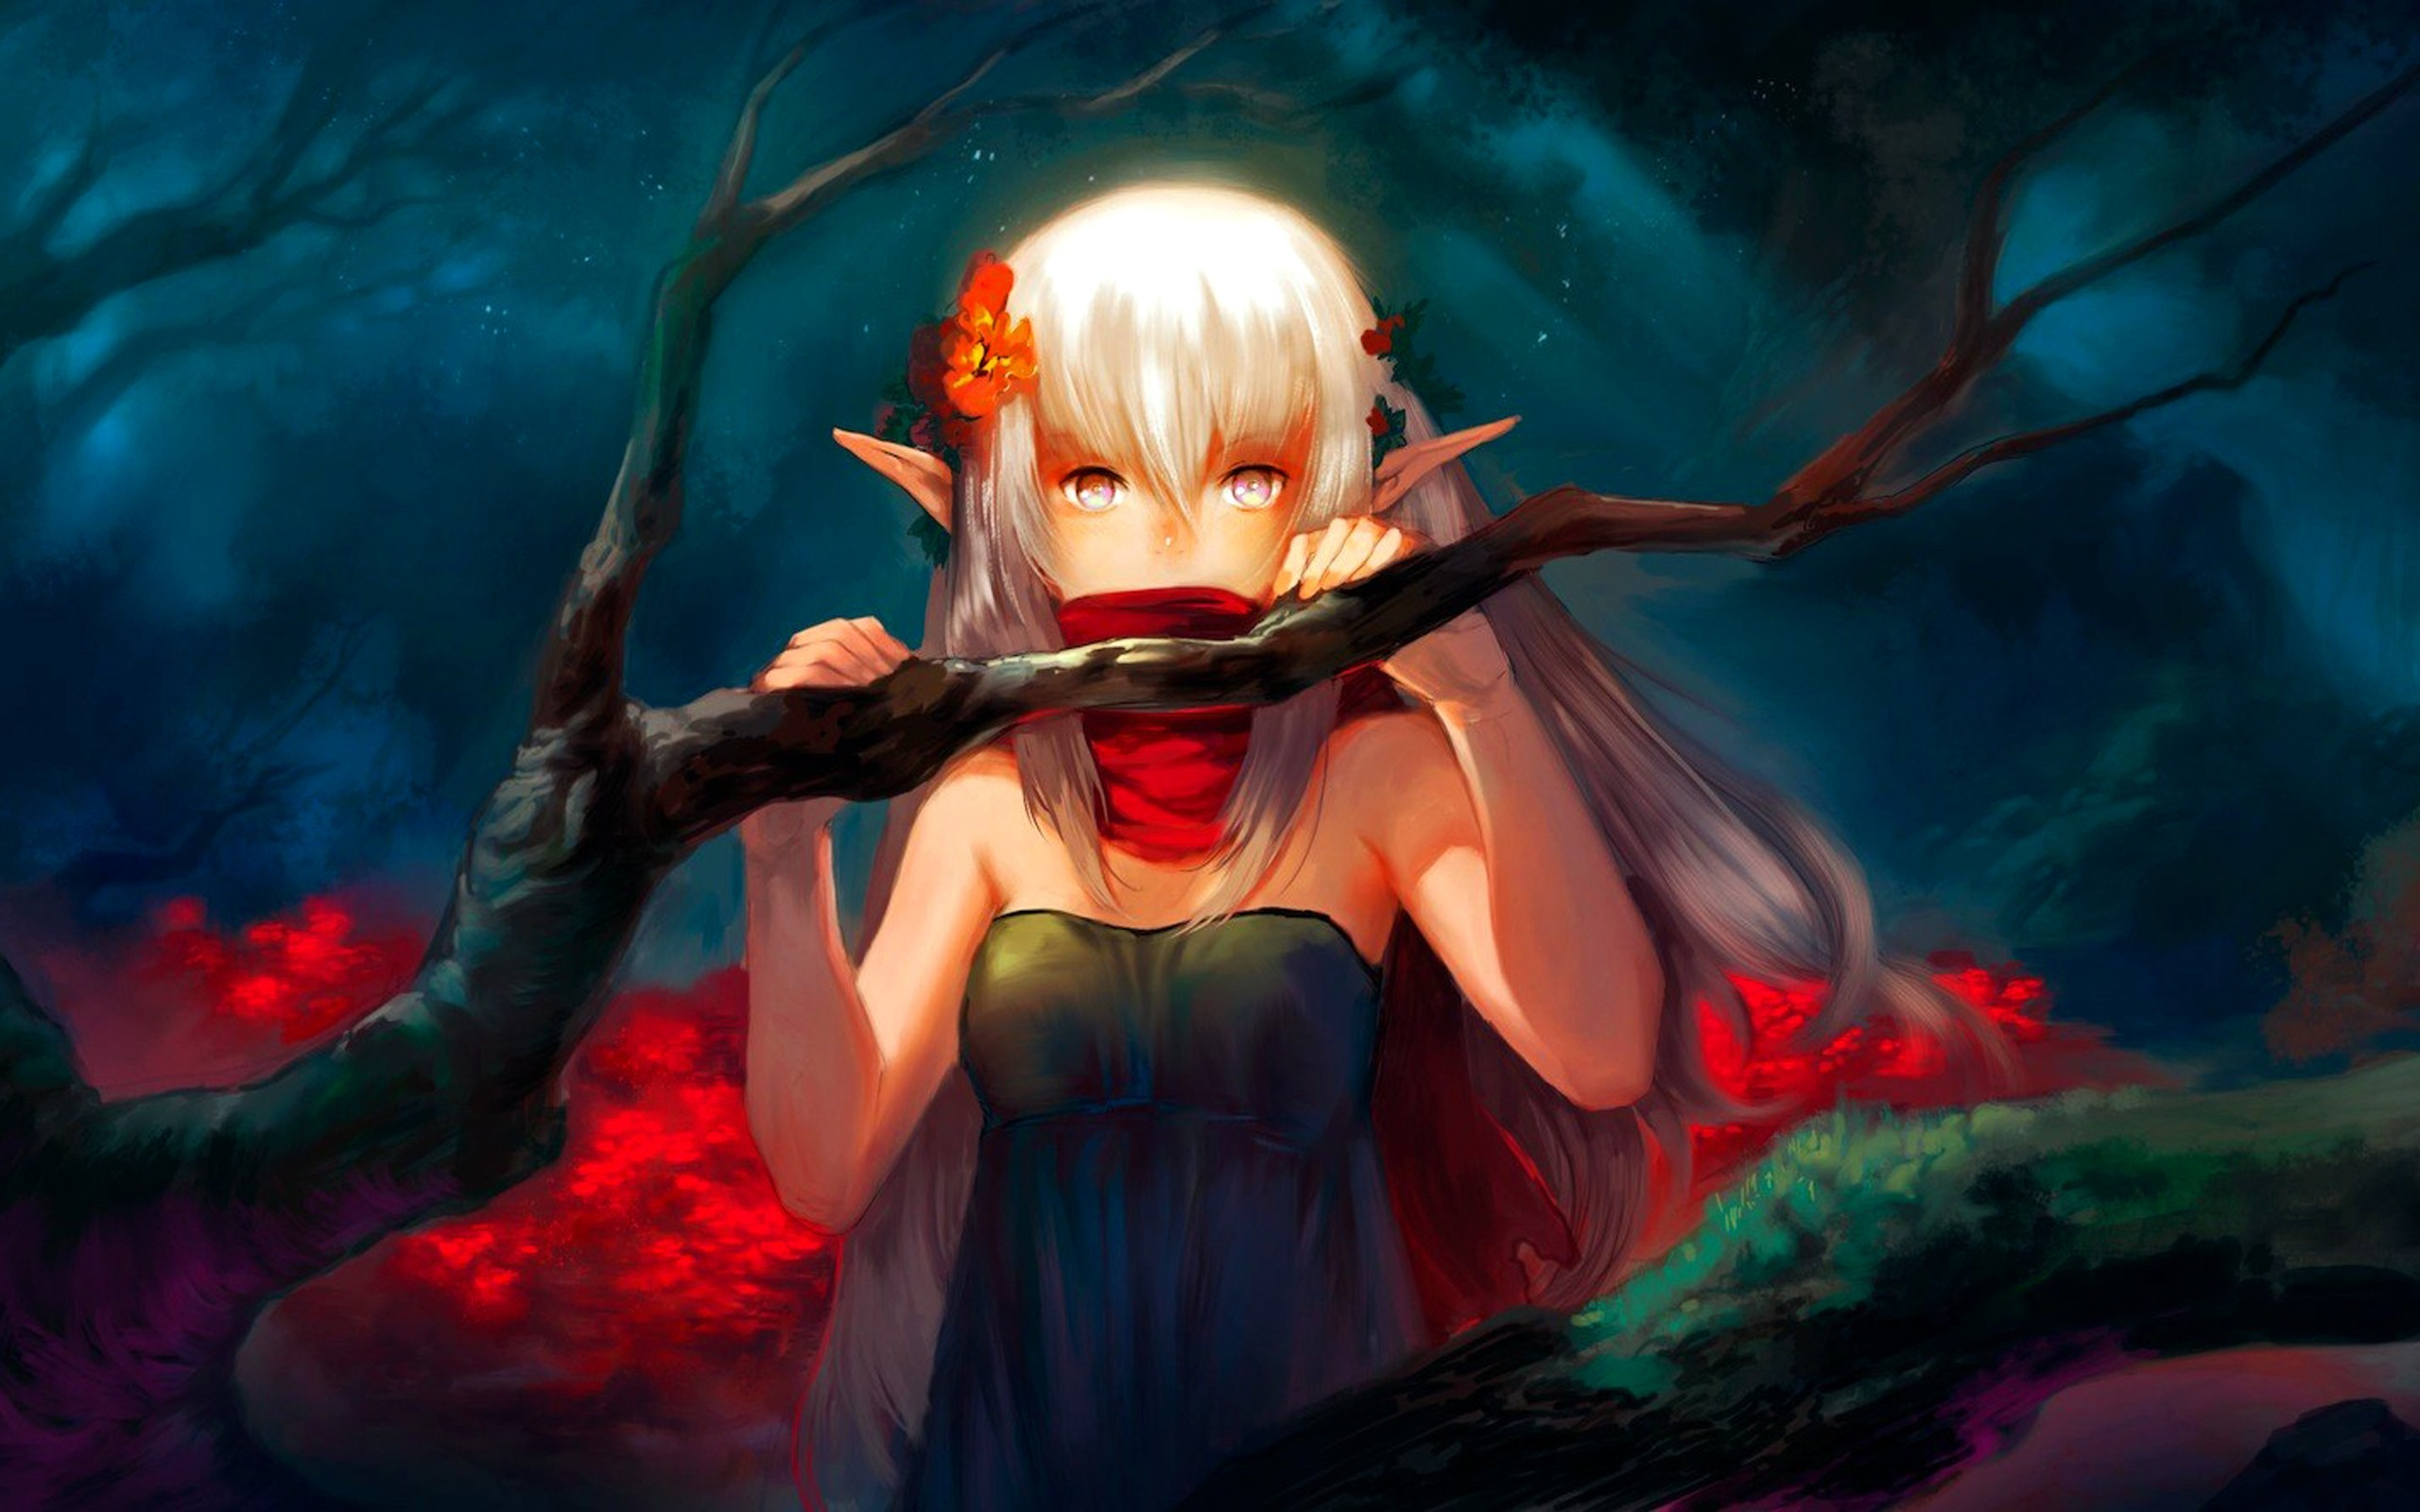 Anime wallpaper for computer wallpapertag - Fantasy wallpaper tablets ...